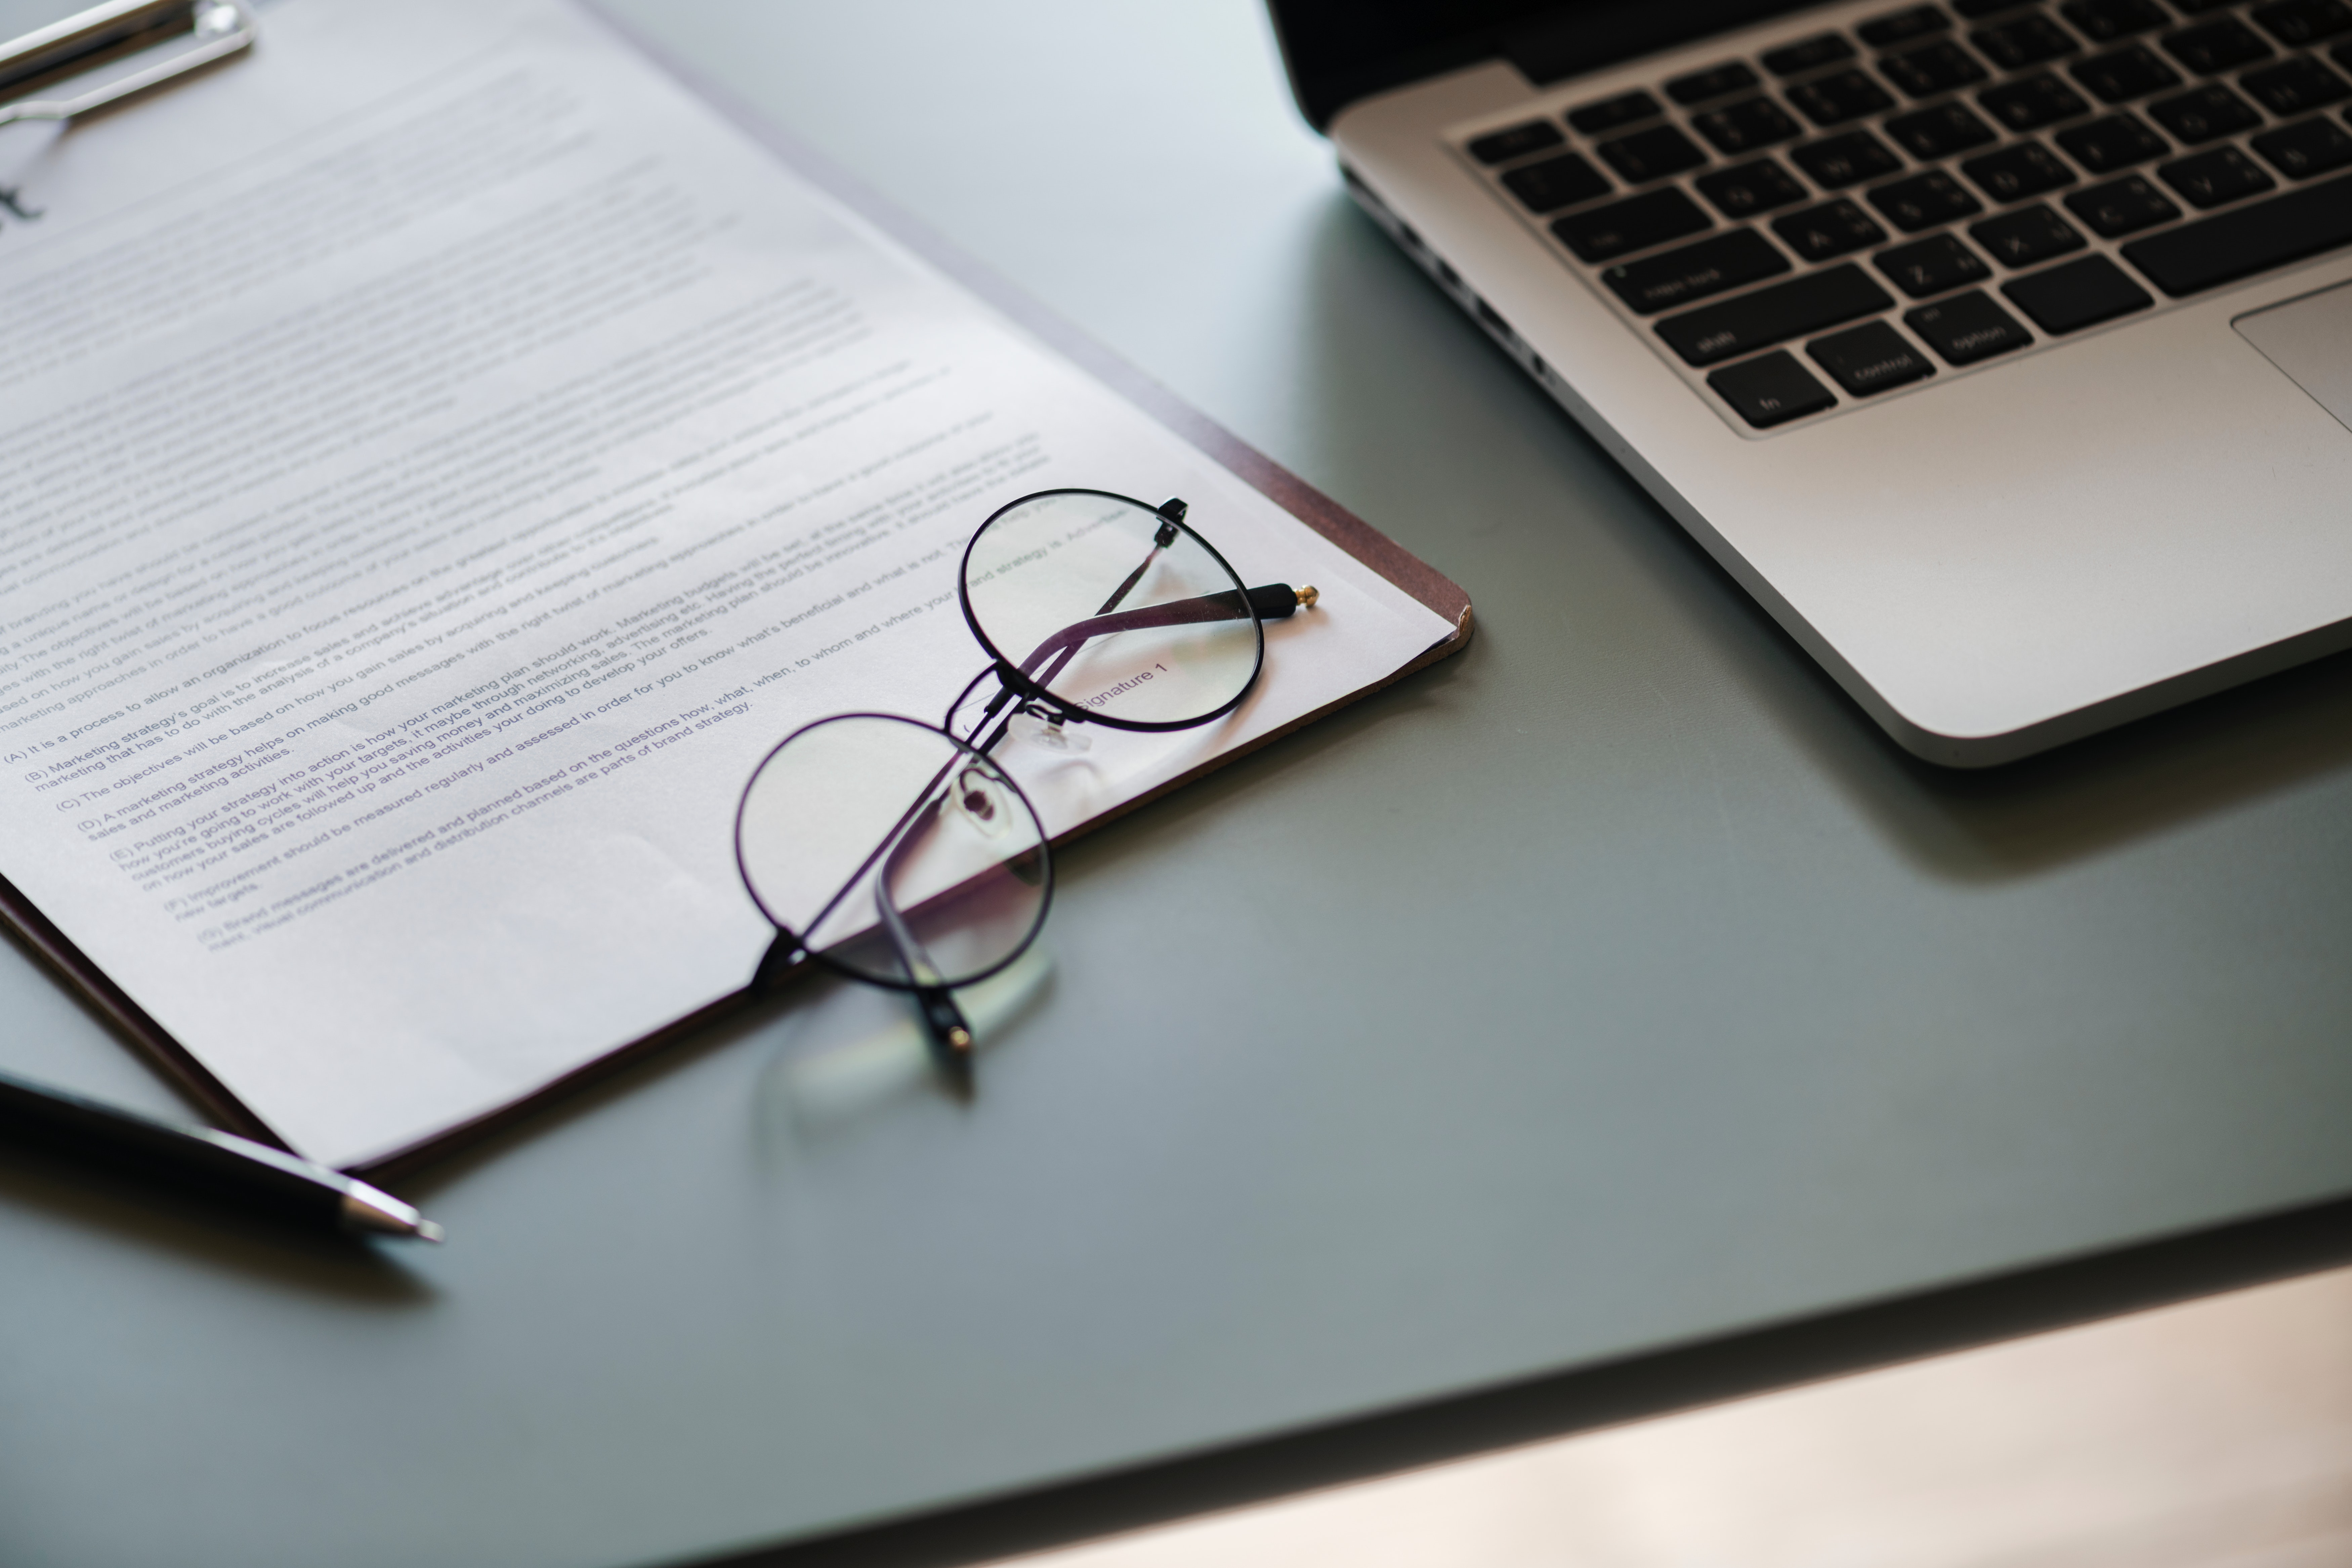 photo of a laptop, a pair of glasses, and a contract on a table